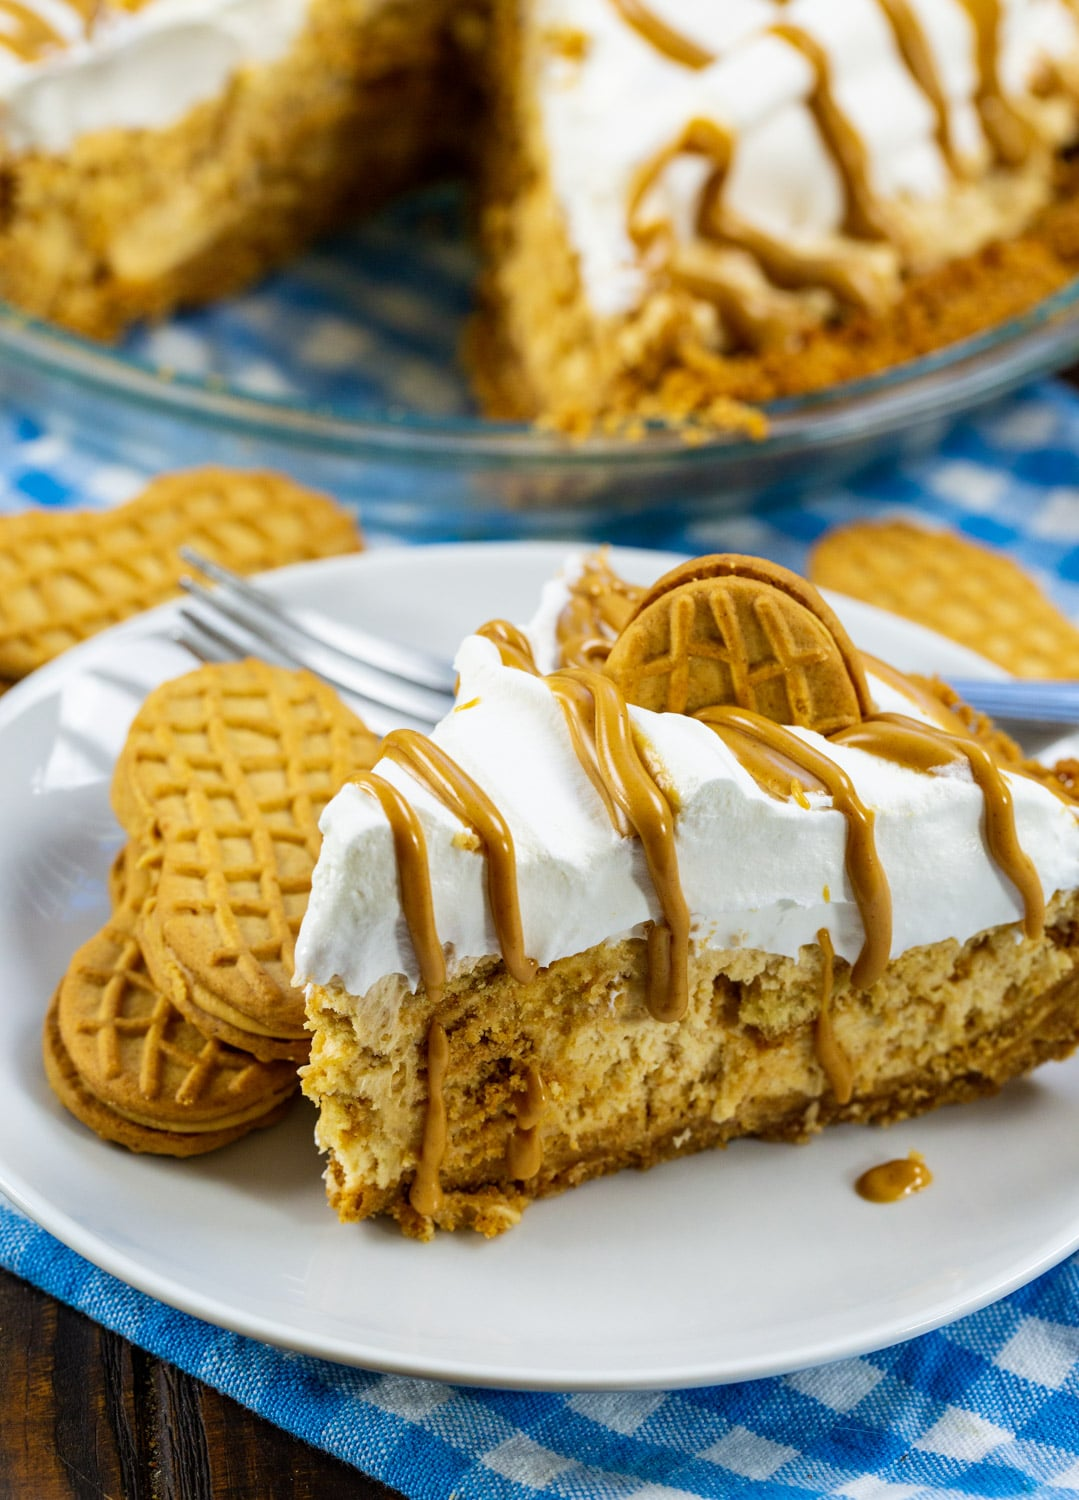 Slice of pie on a plate with 2 Nutter Butter cookies.